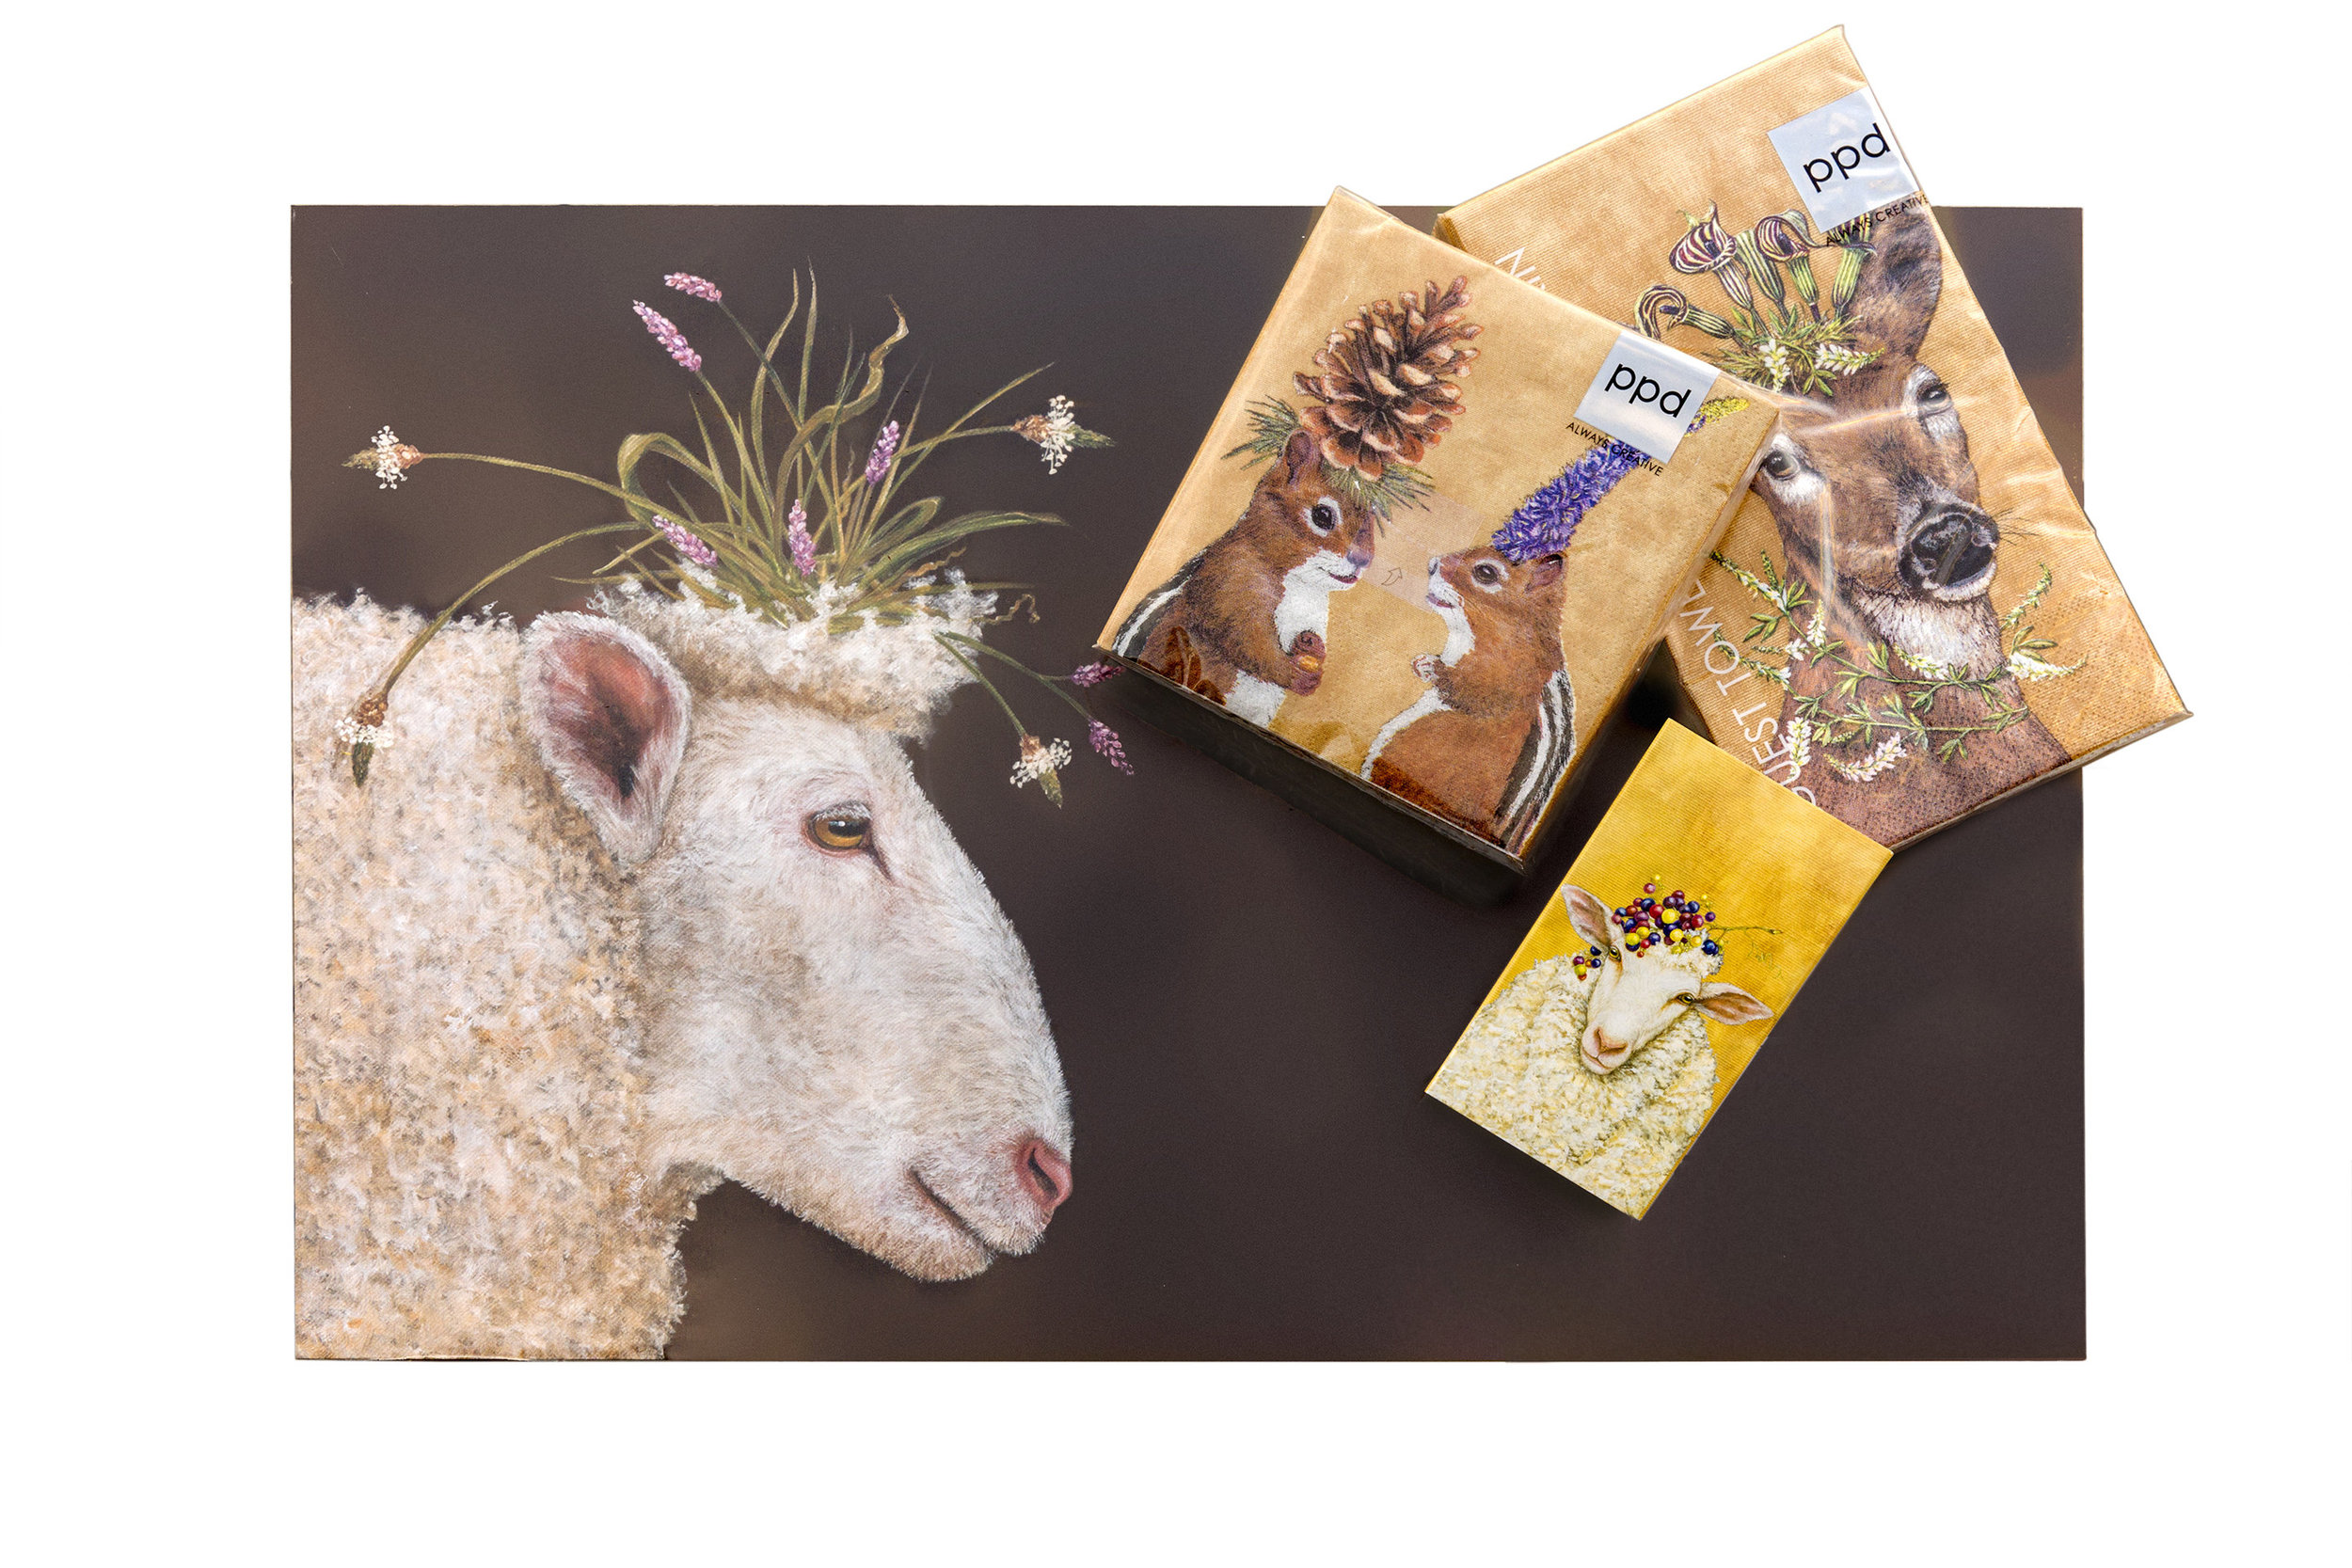 Consider paper for your holiday table - Keeping true to our store's Winter Woodland theme,why not use HC Gertrude paper placemats and accent napkins to make your holidays easy and whimsical! Matchbooks also available!